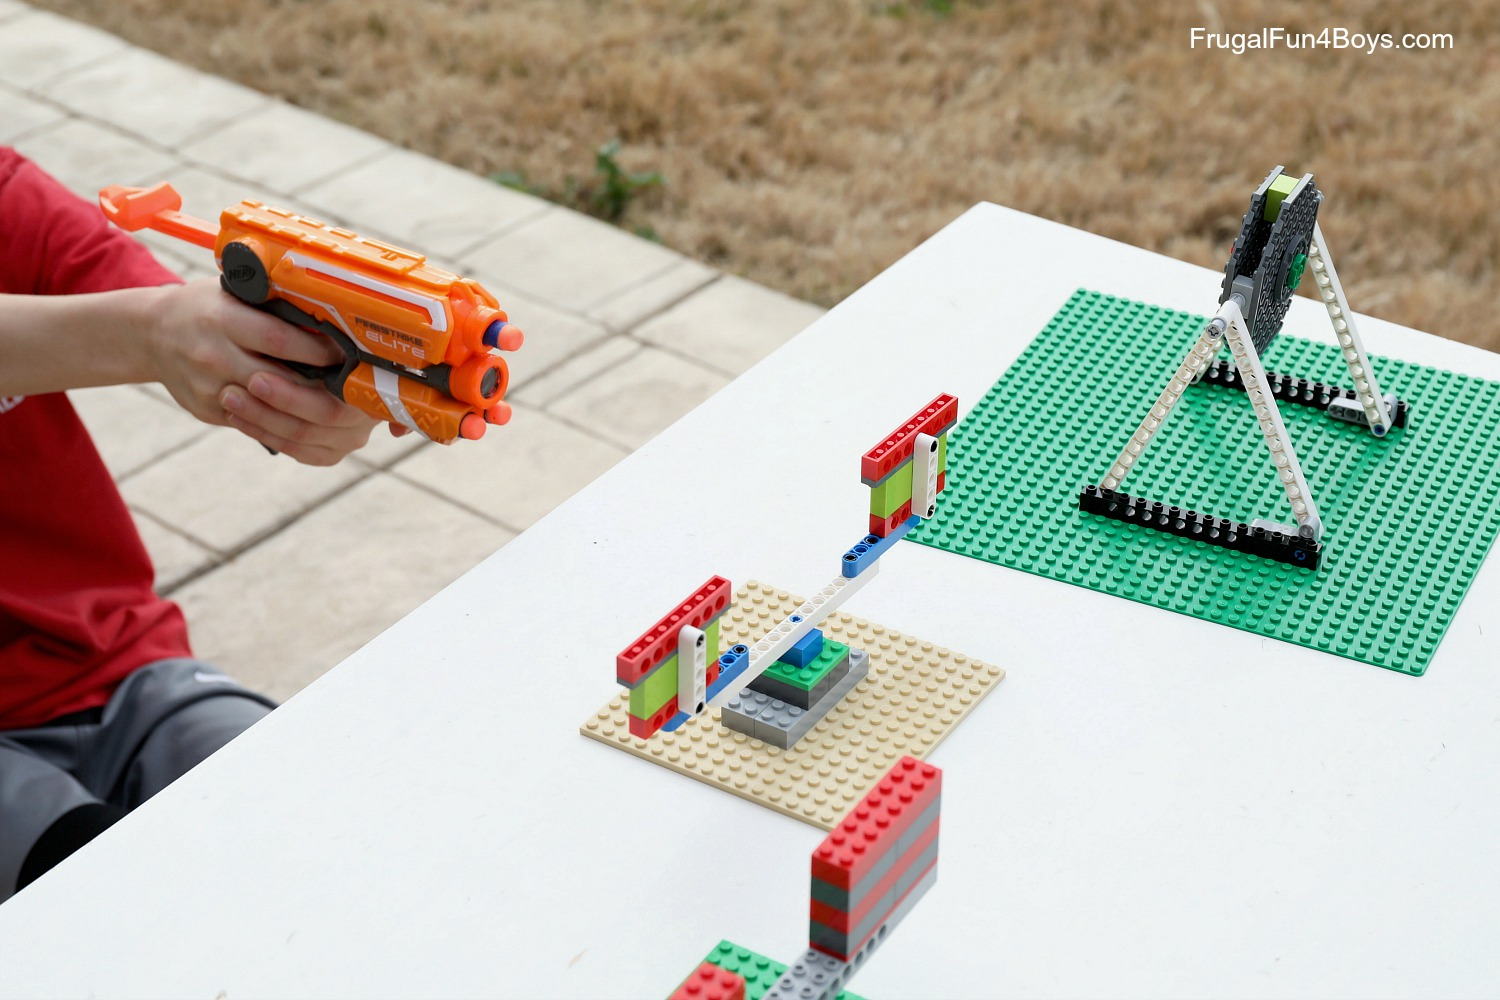 How to Build Spinning LEGO Nerf Targets